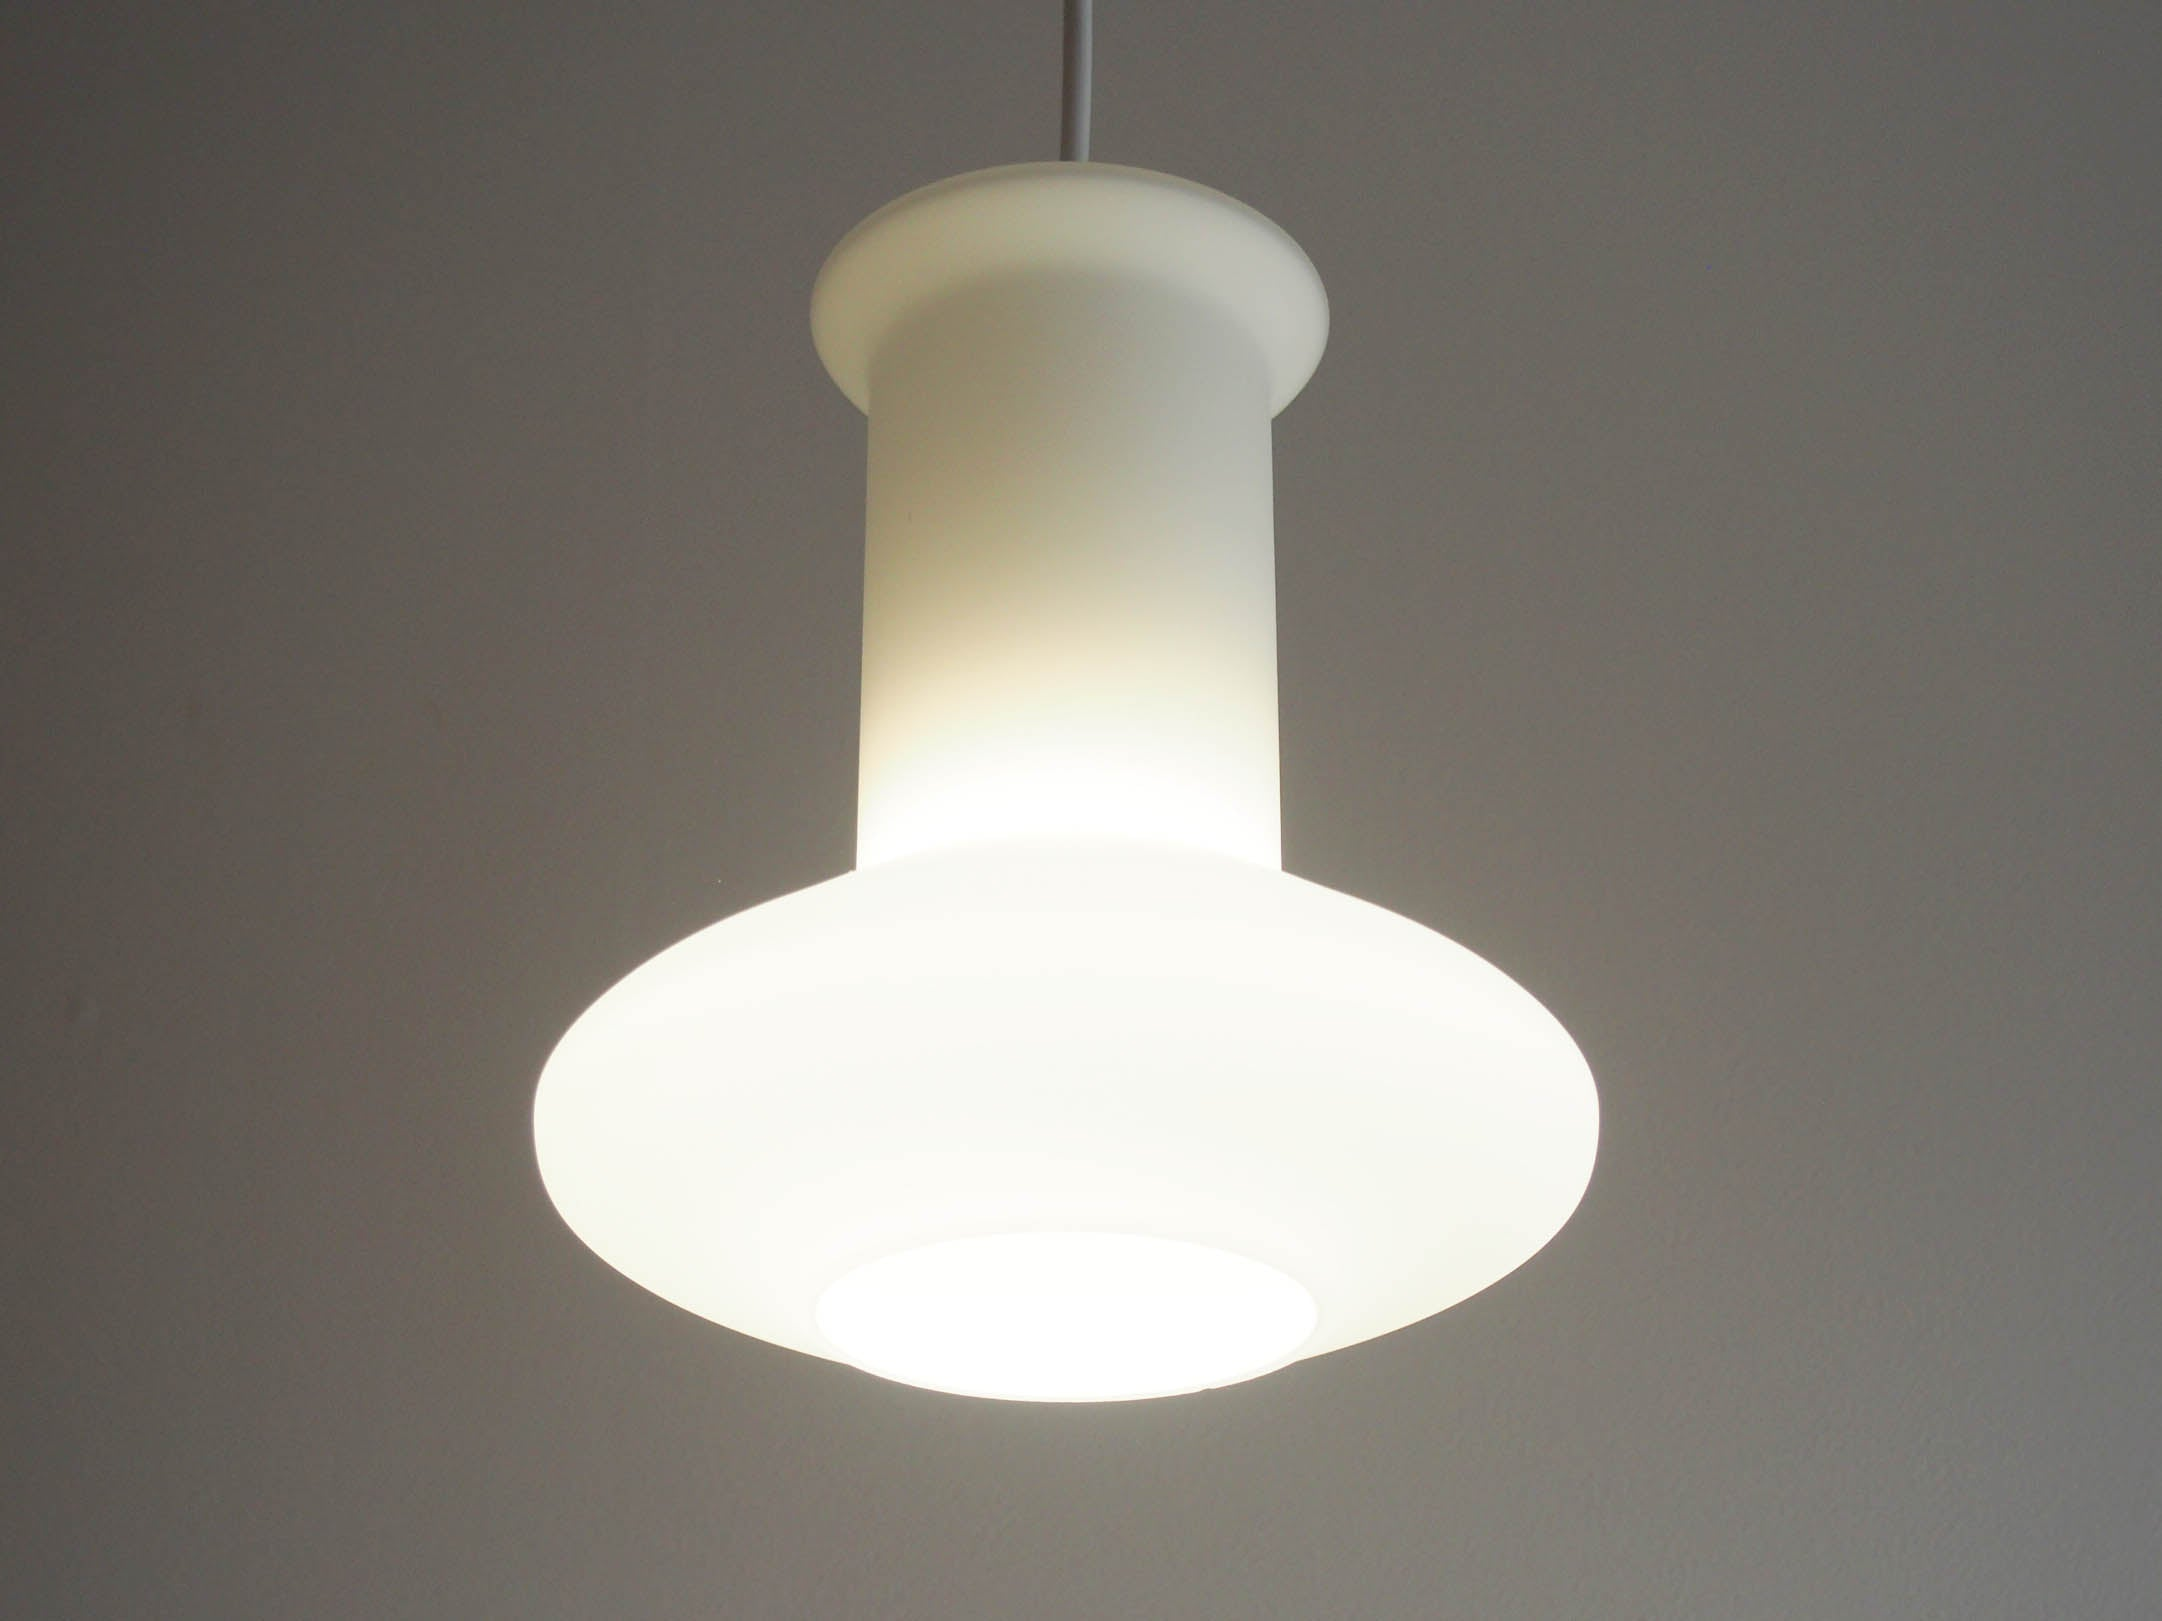 Vintage - Denmark - White glass pendant lamp